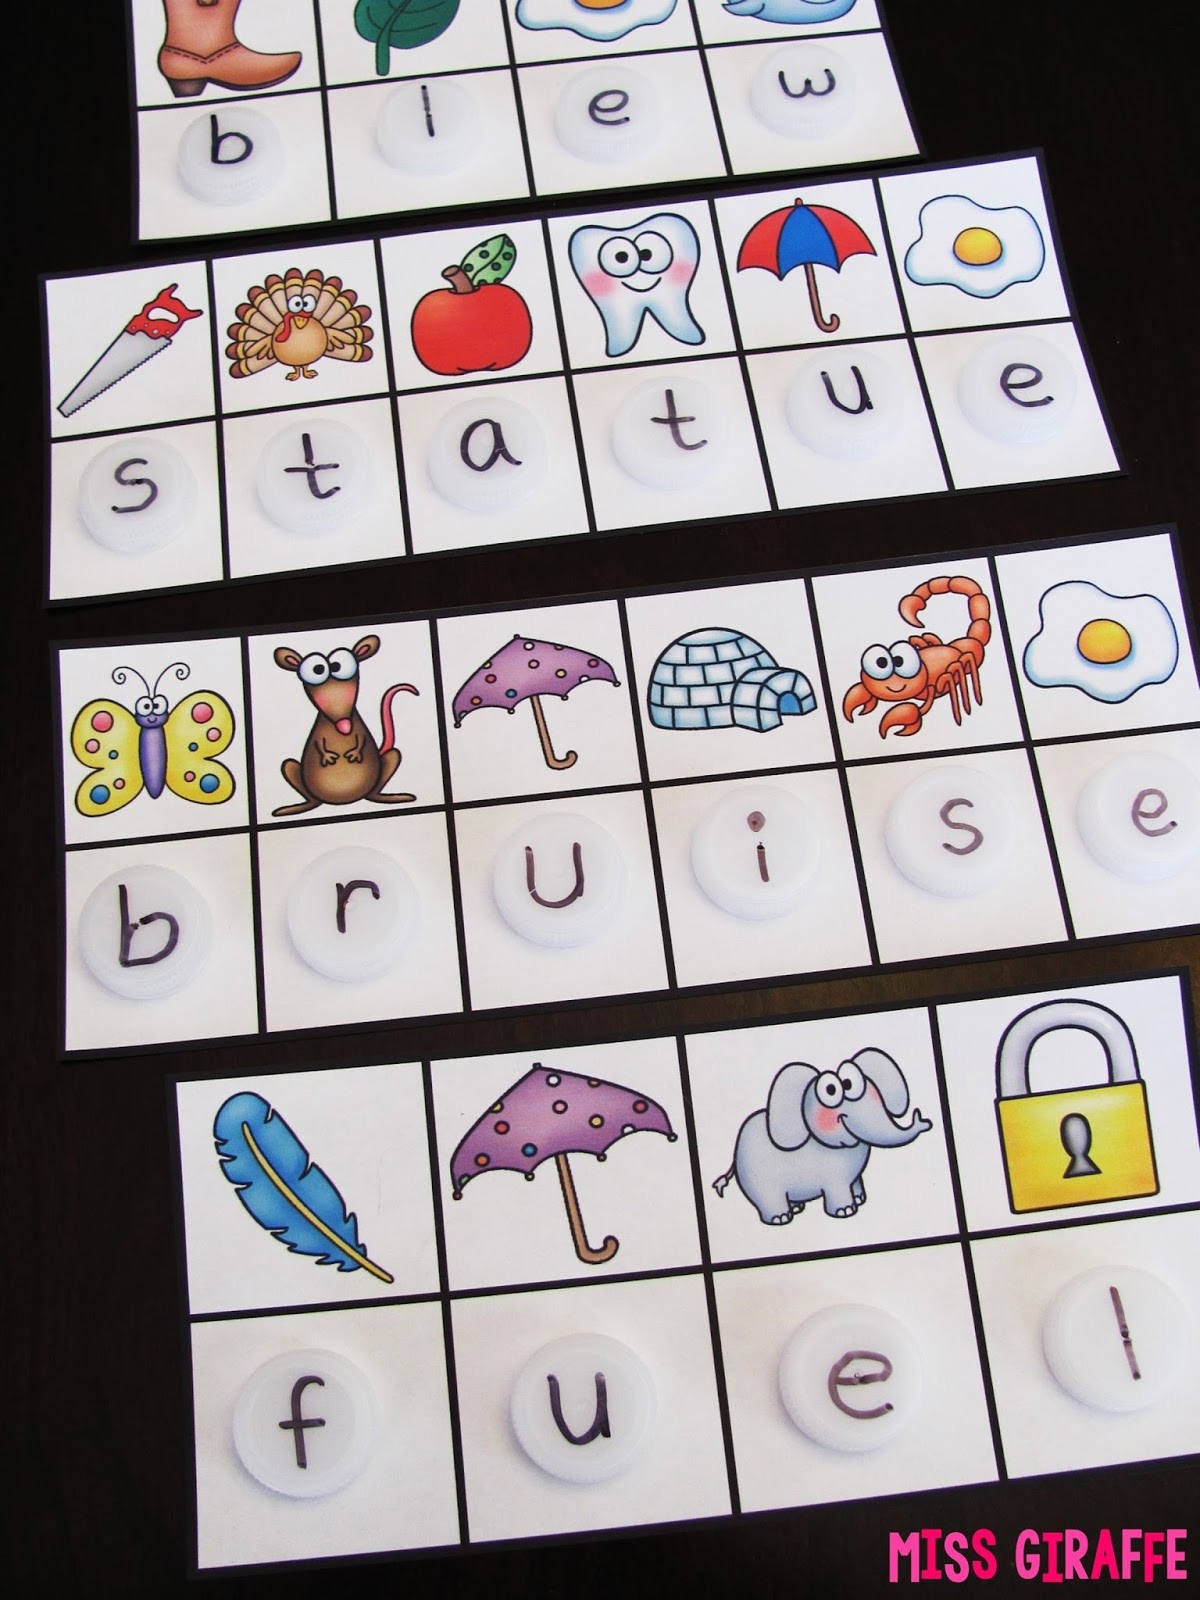 worksheet Ui Phonics Worksheets miss giraffes class ew ue ui activities recycle bottle caps to use with these secret word centers i love phonics activities